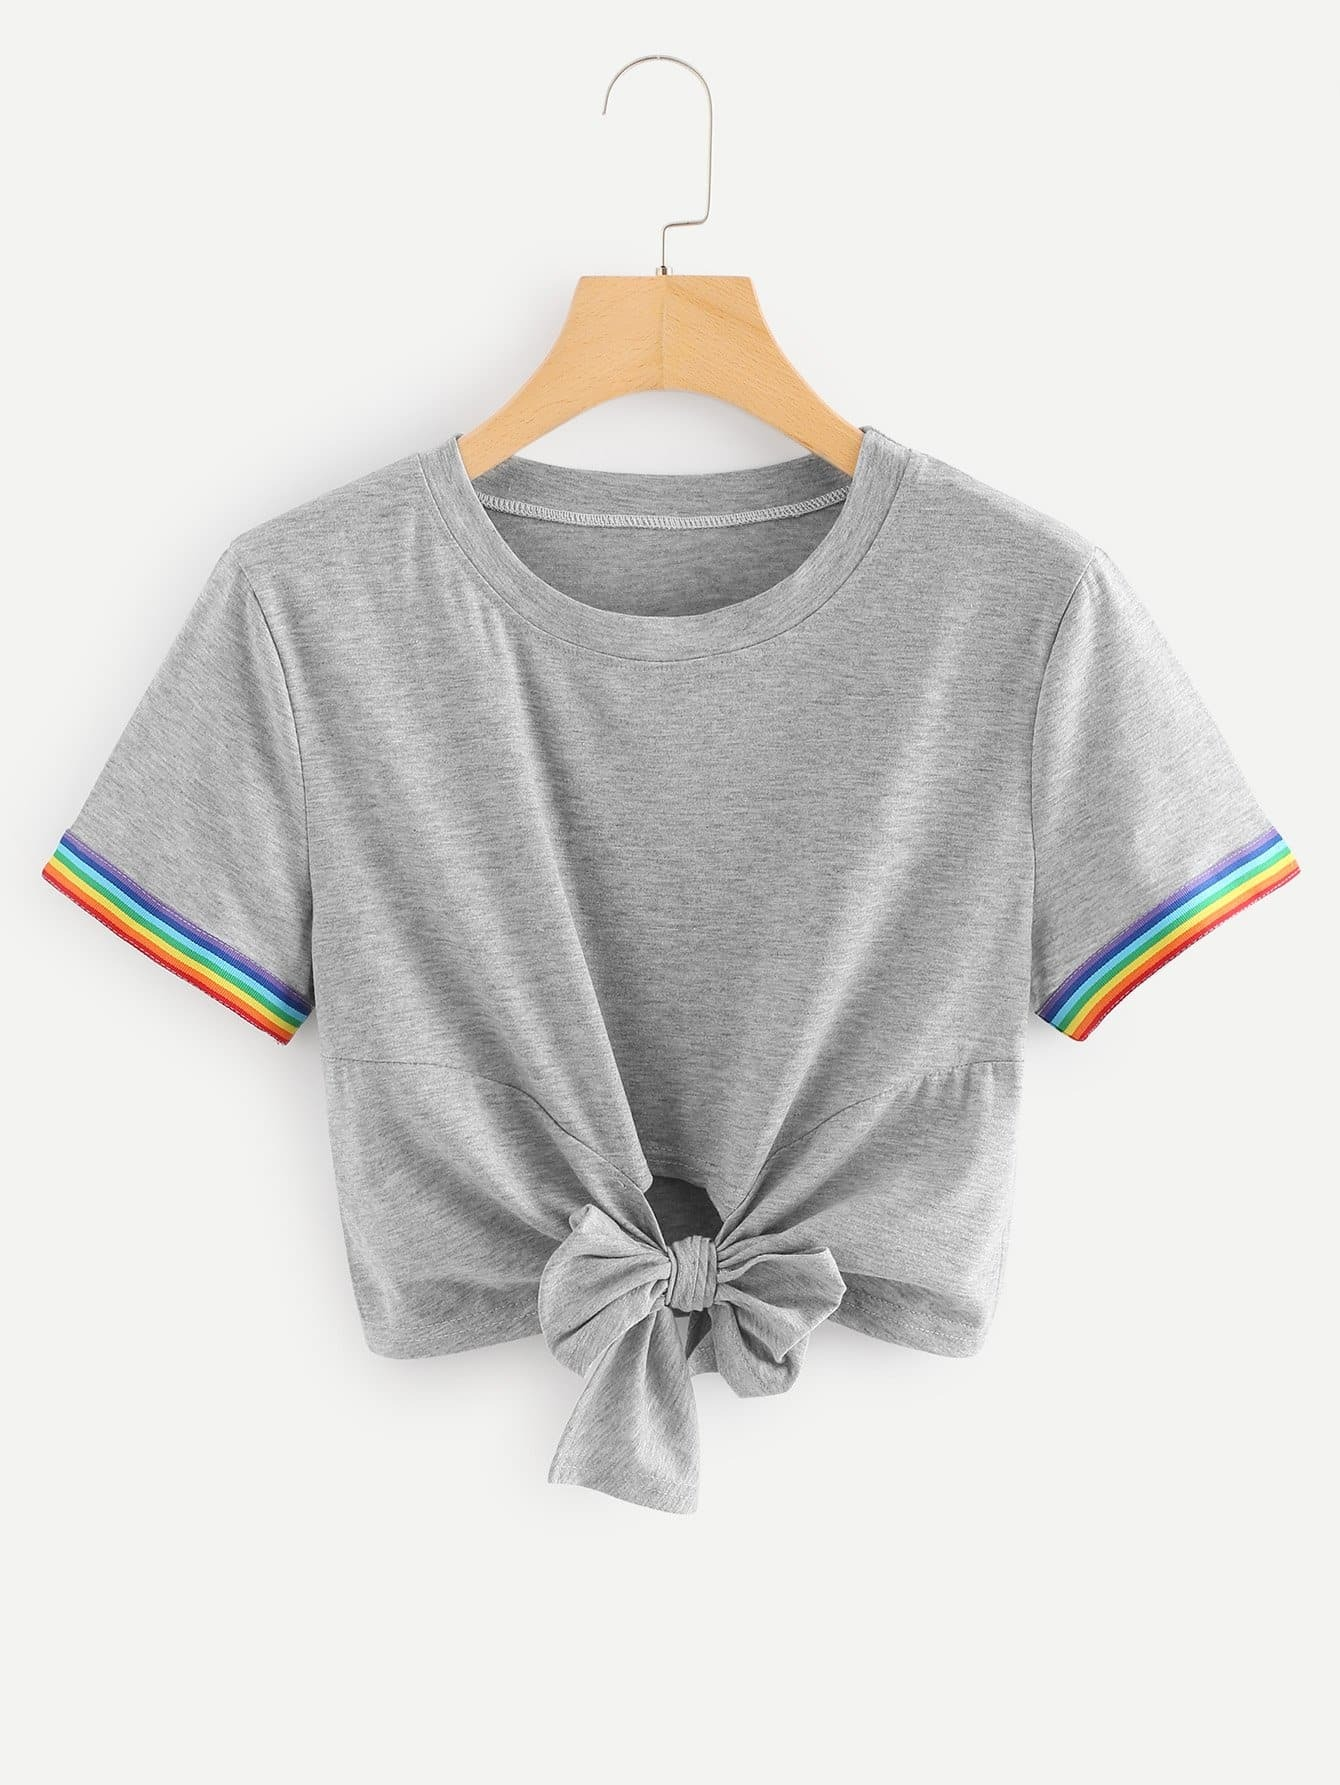 Knot Front Crop Tee knot front fit